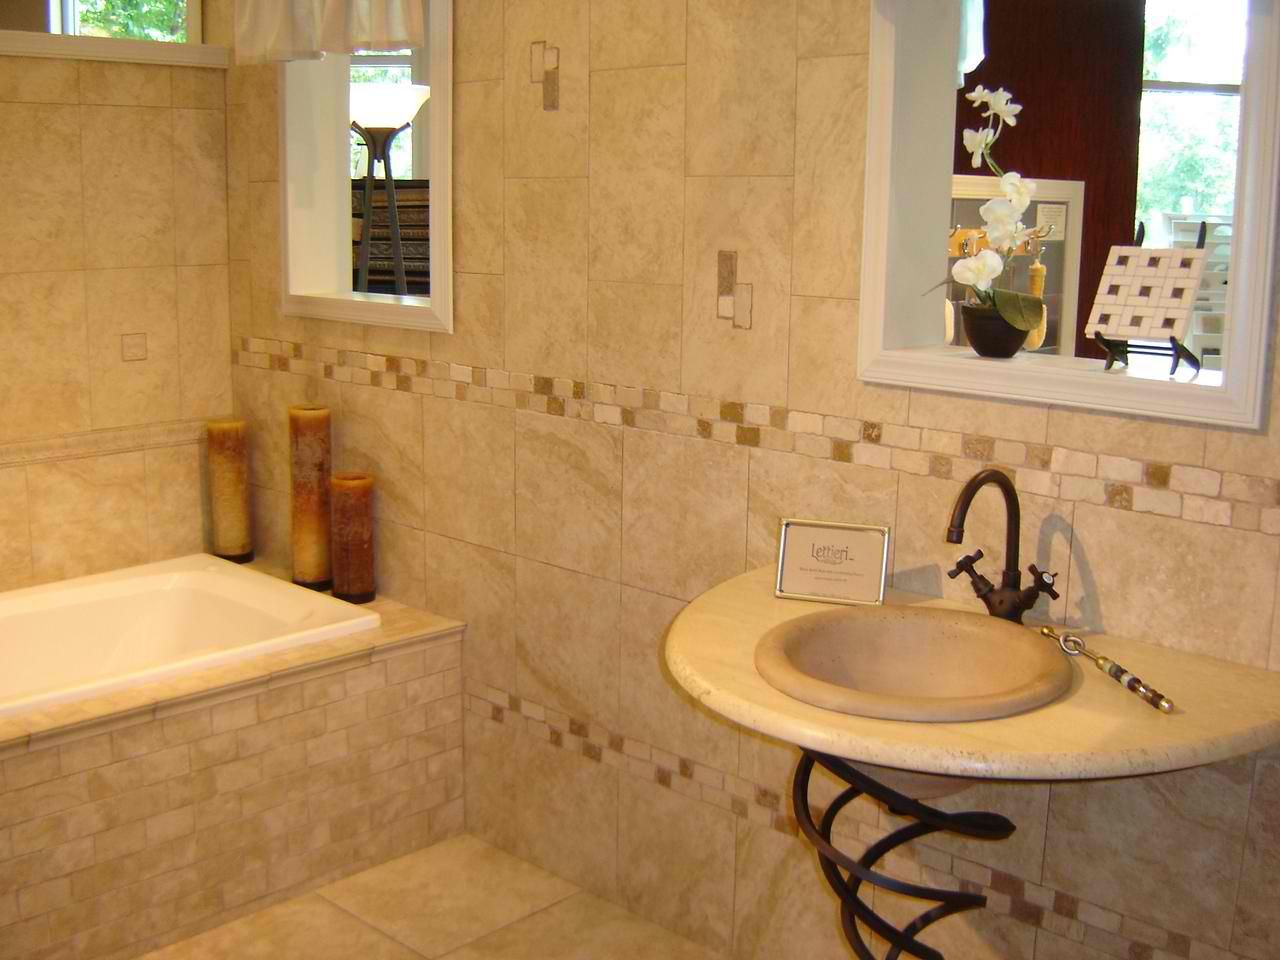 13 Tile Tips For Better Bathroom Tile: Tips On How To Refinish Bathroom Tiles